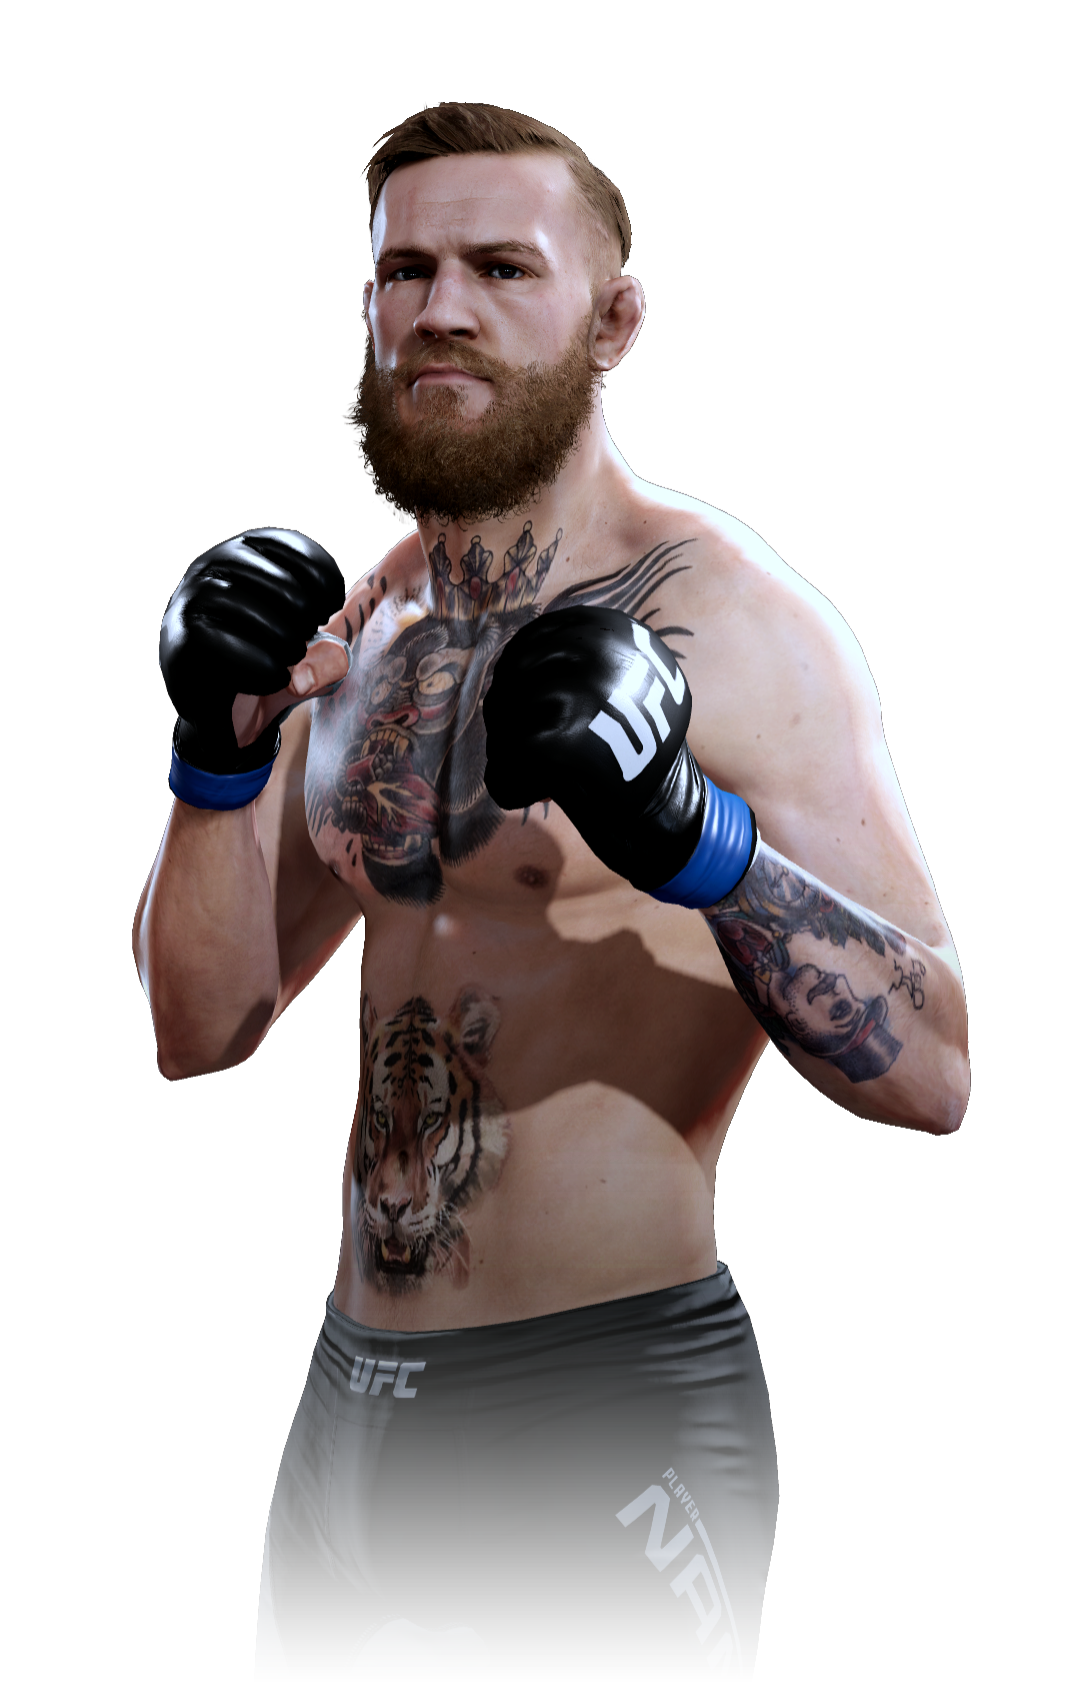 UFC 3 - Get started in EA SPORTS UFC 3